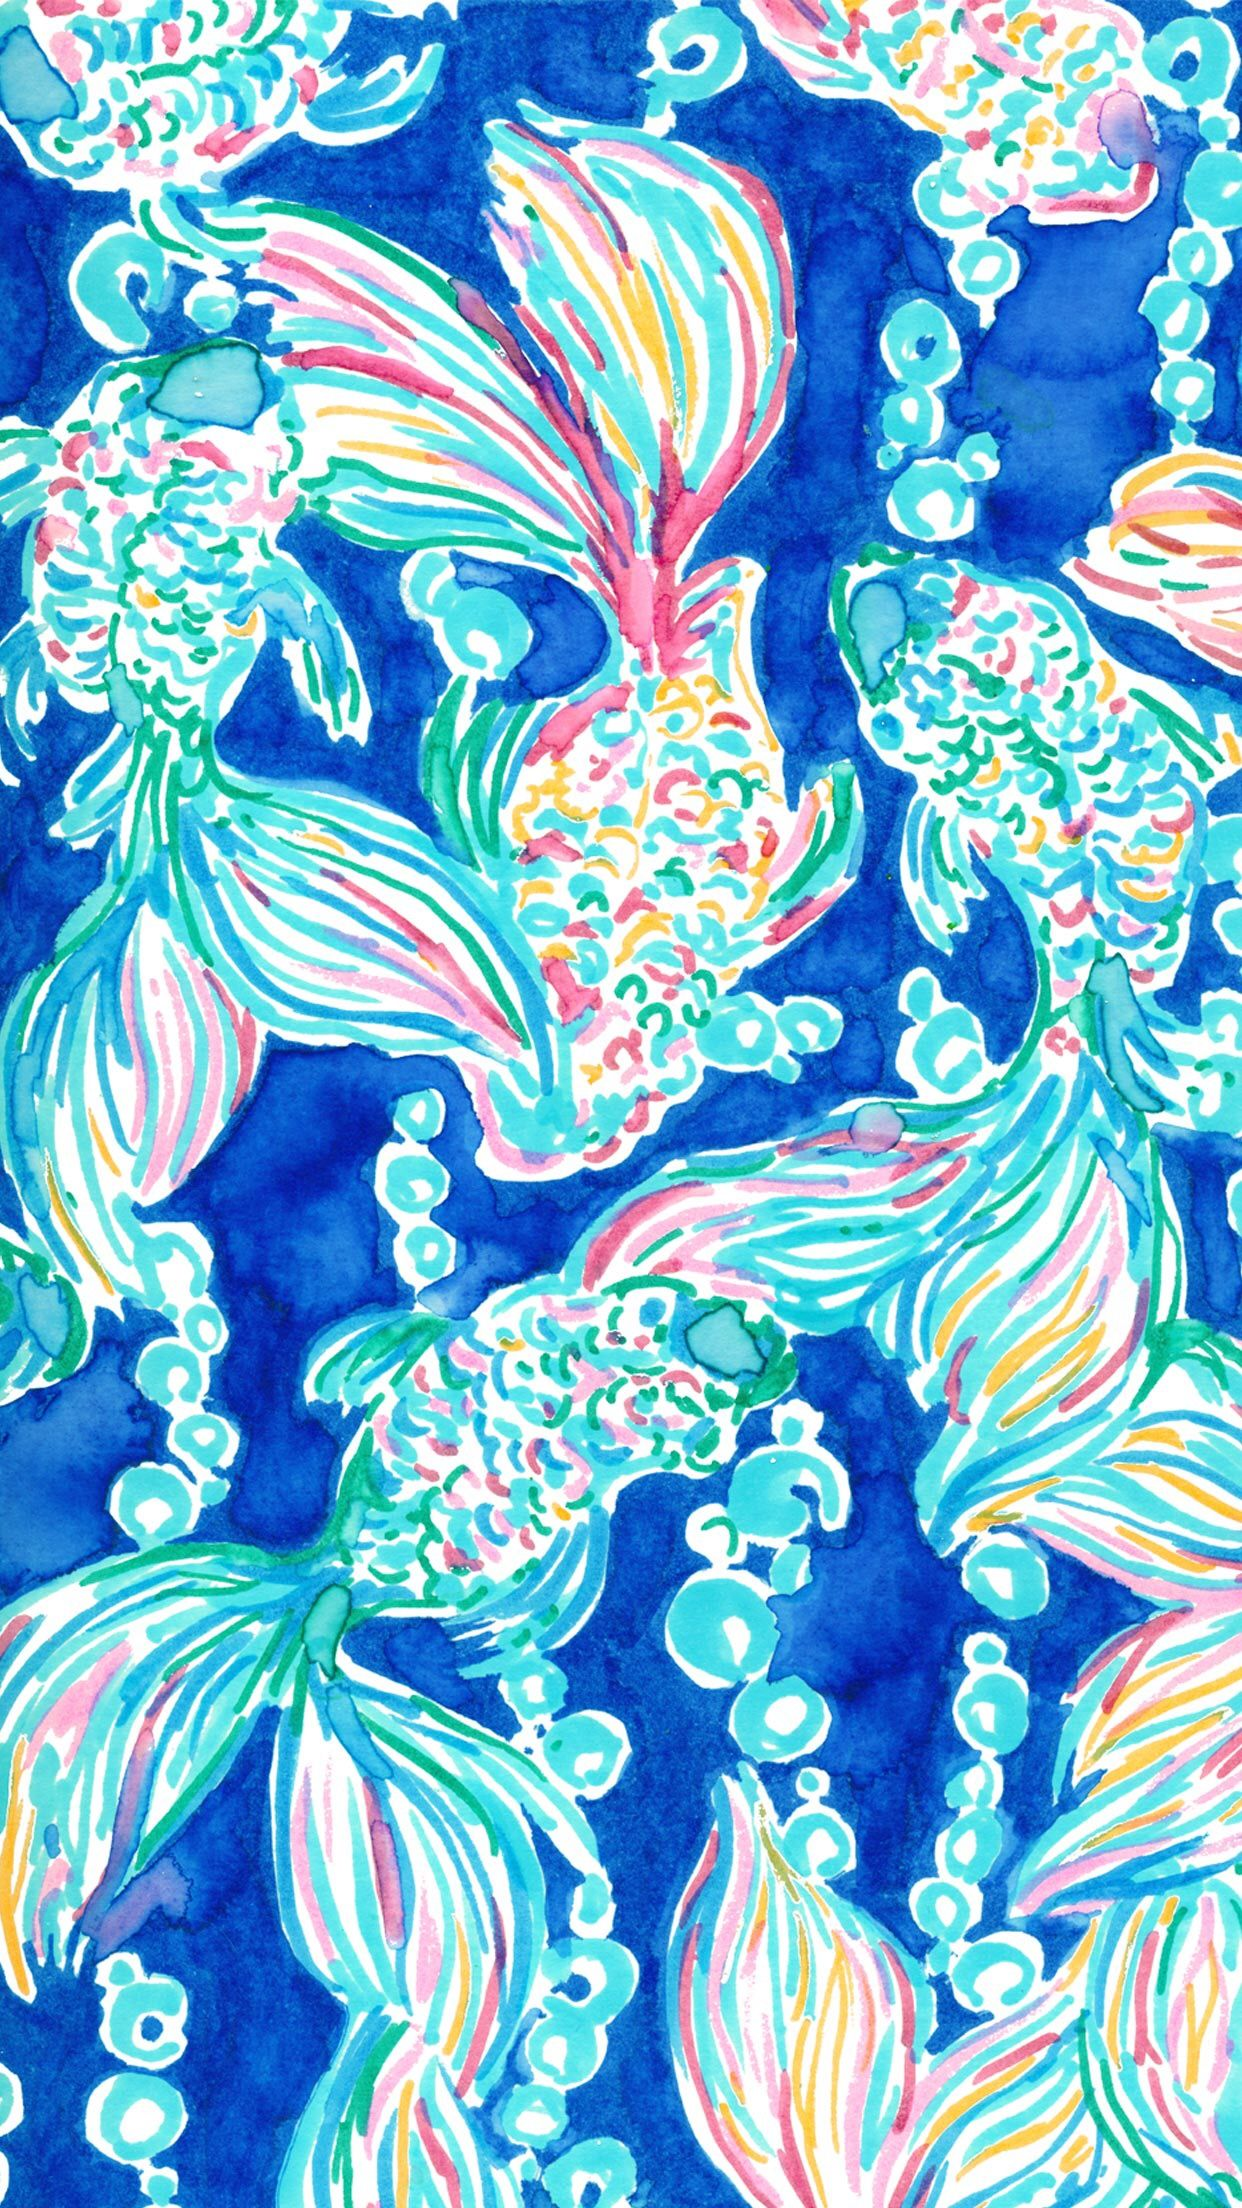 Going Coastal   Lilly Pulitzer LP in 2019 Lily pulitzer 1242x2208